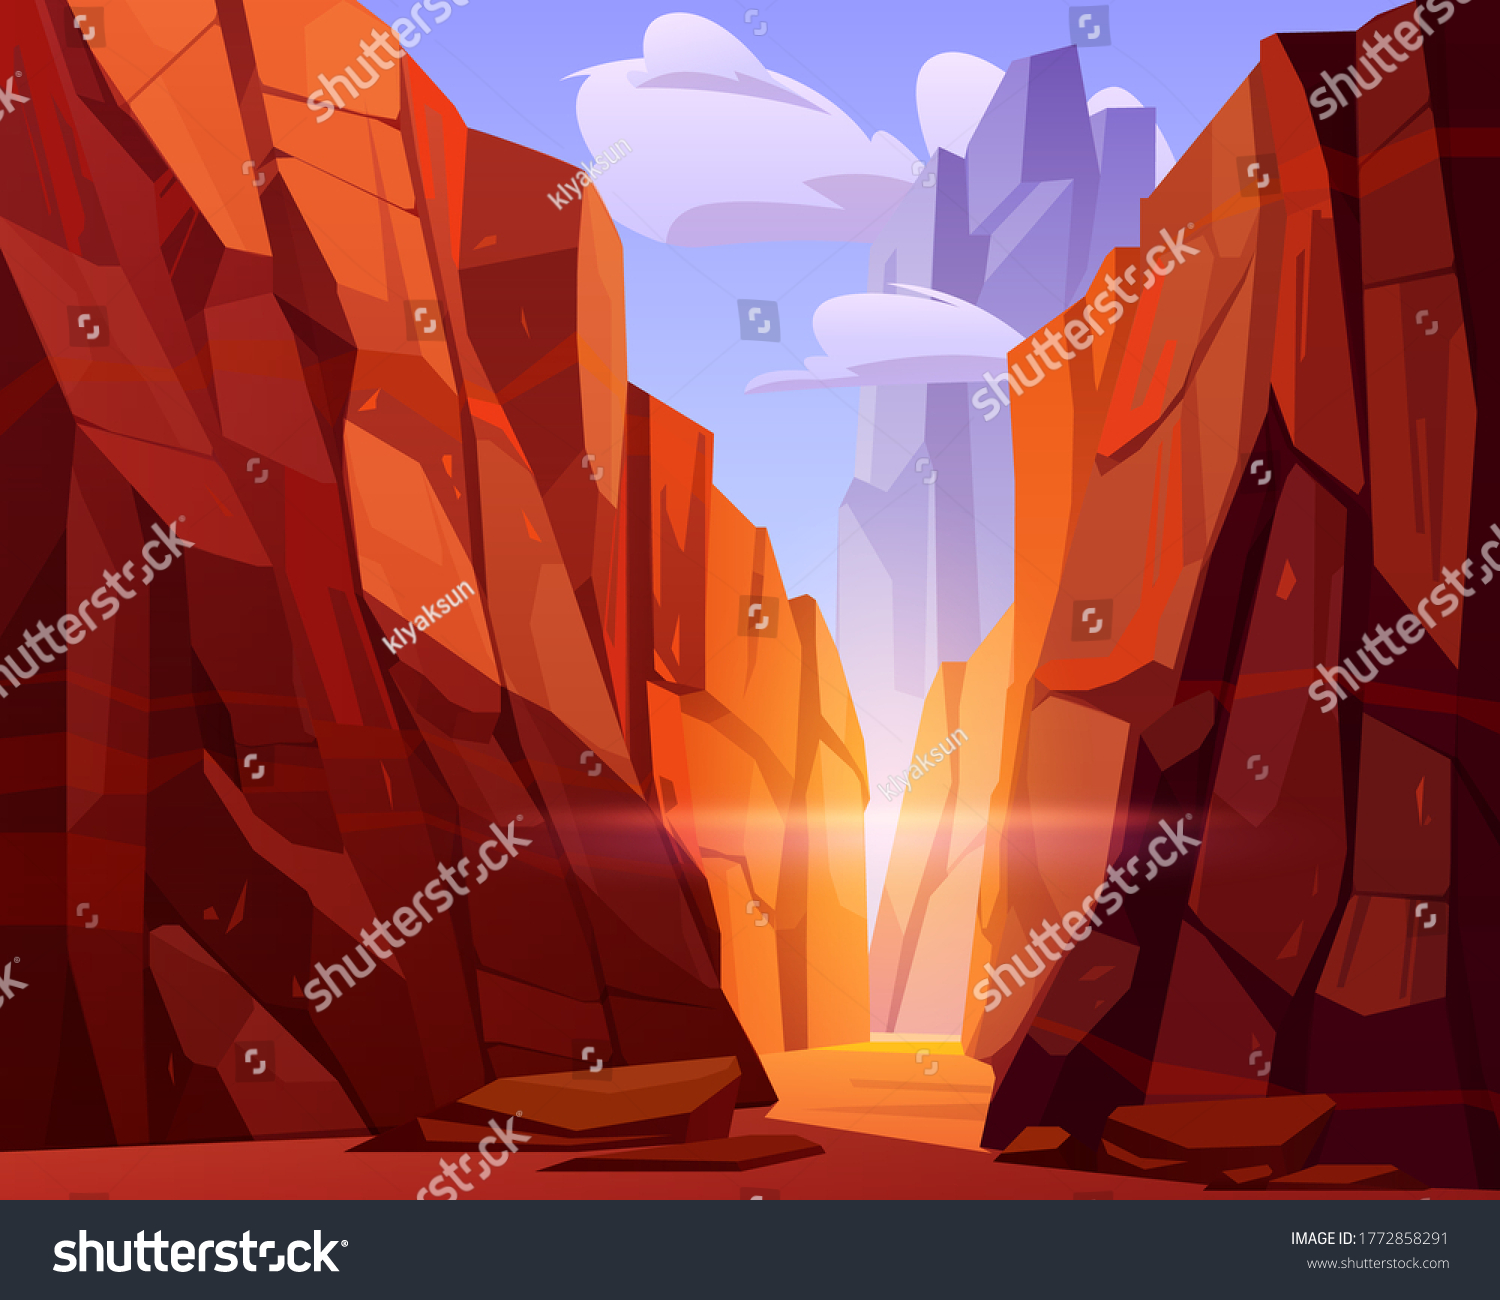 Desert road in canyon with red mountains. Vector cartoon landscape of nature park, ground road in gorge with stone cliffs and rocks. Grand canyon national park in Arizona